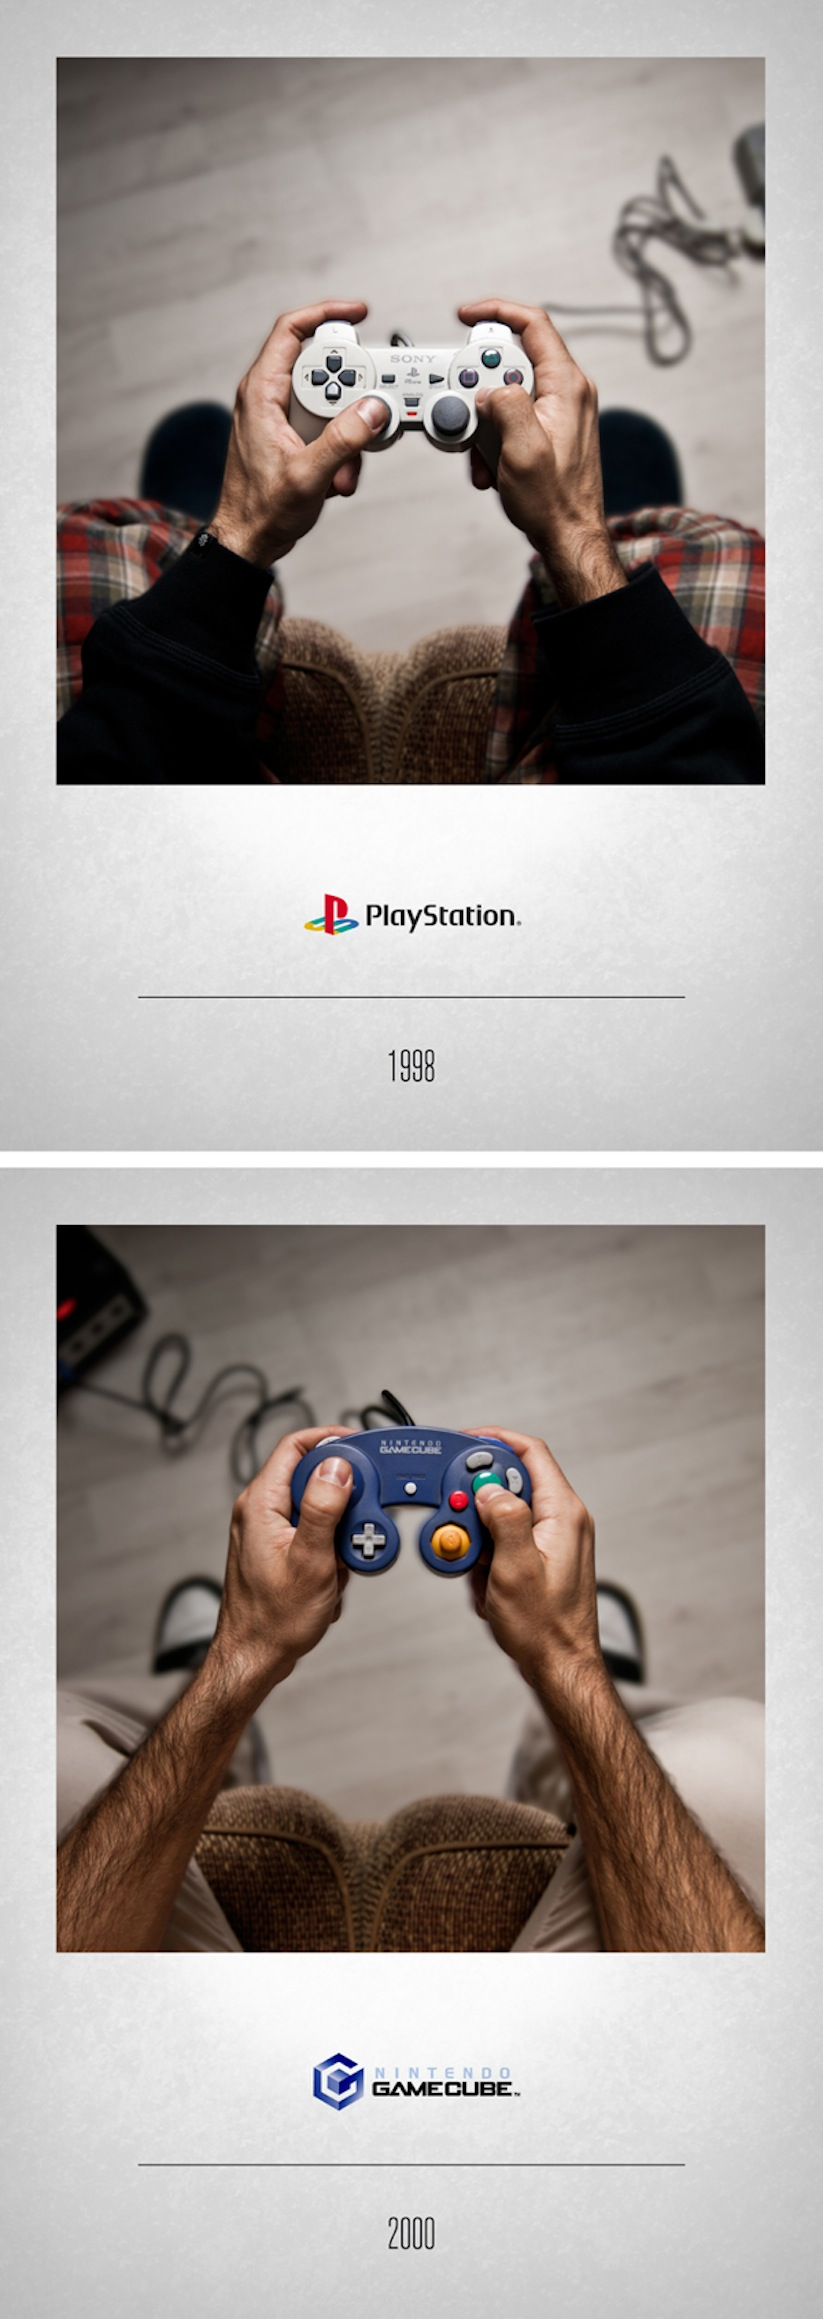 video games history_javier laspiur_11